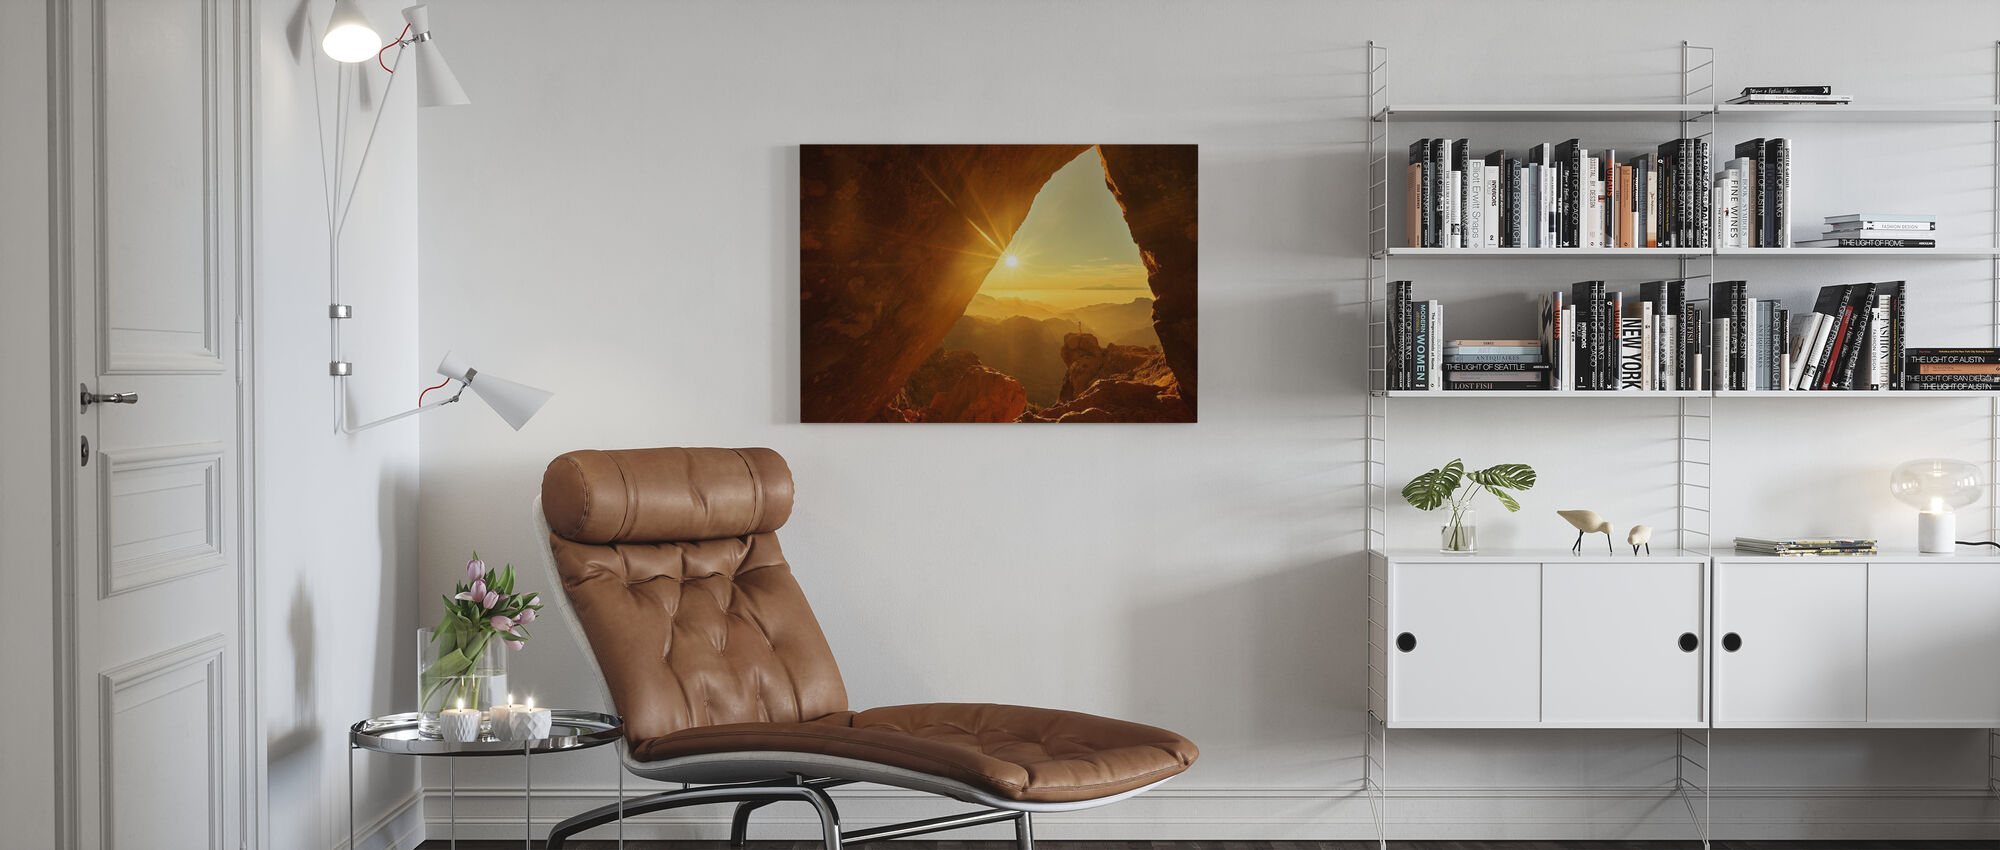 Top of the Mountain - Canvas print - Living Room